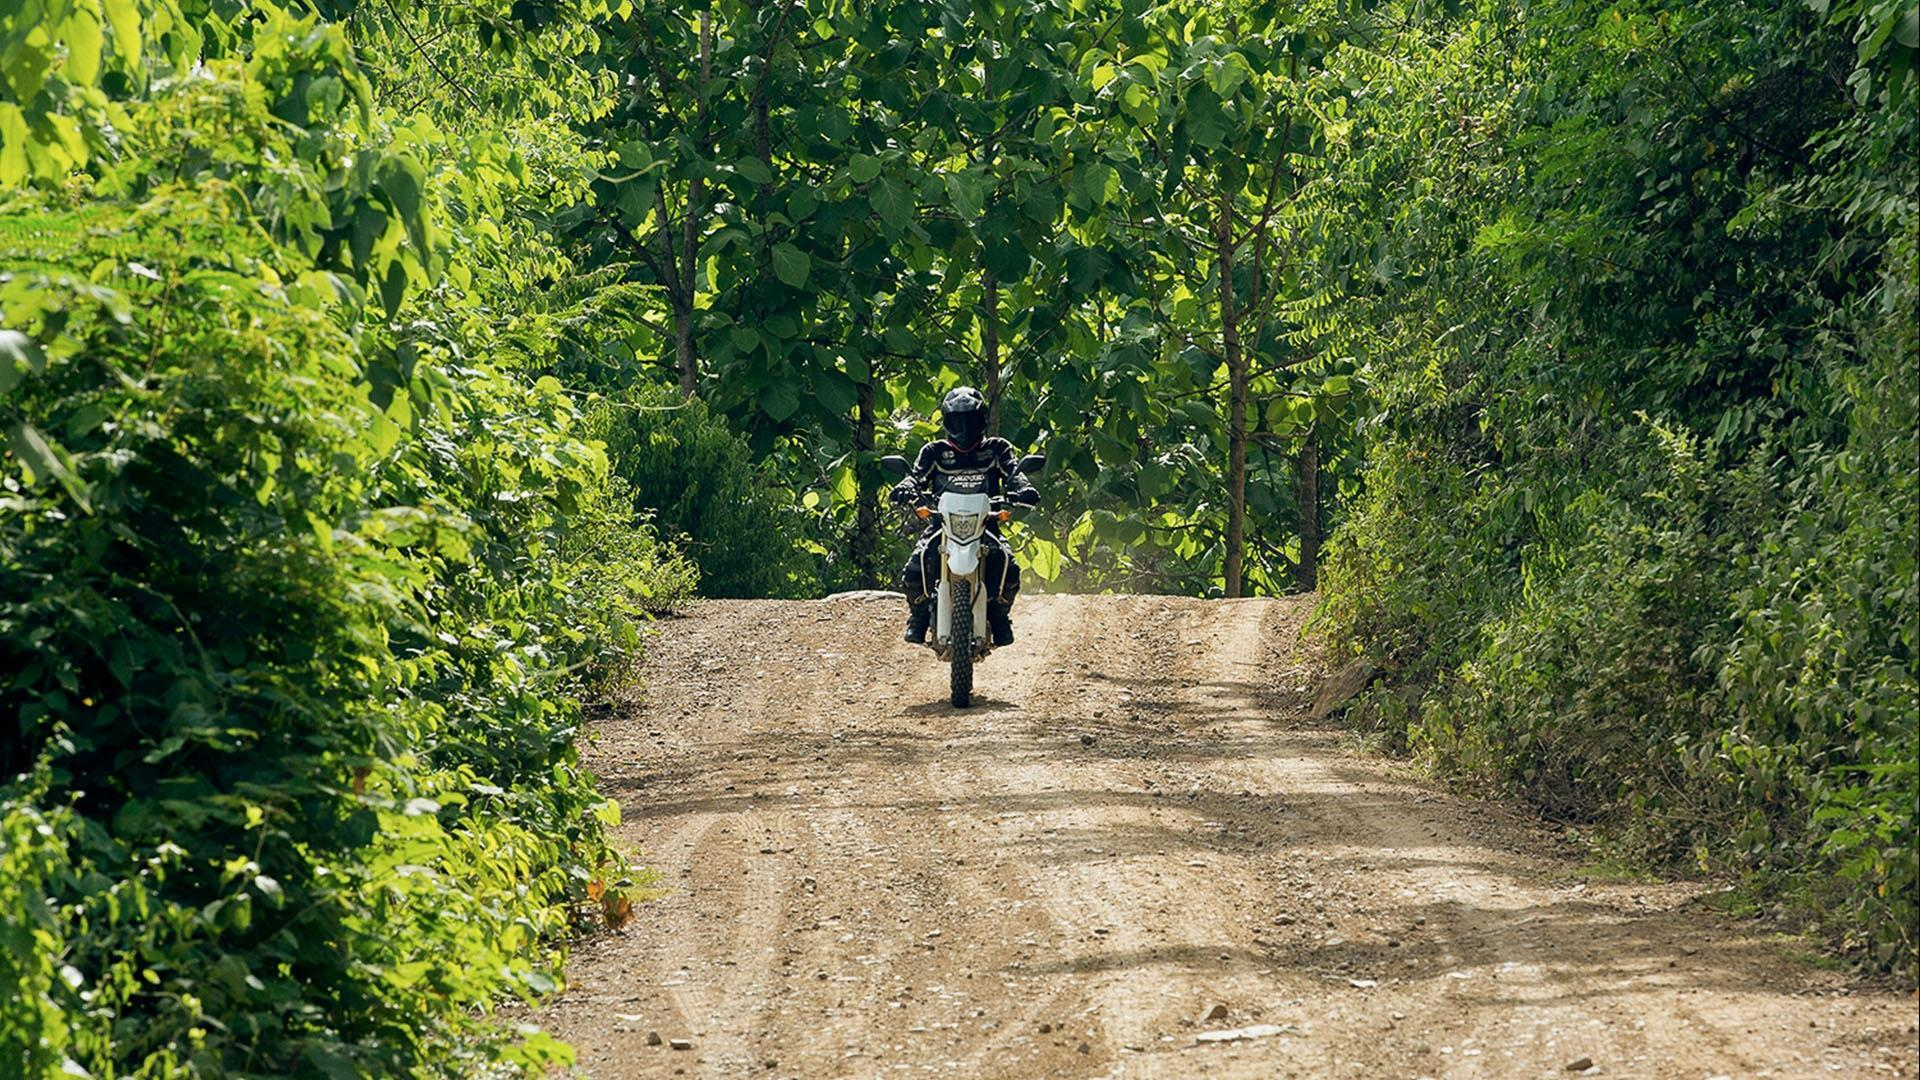 Laos, Luang Prabang – Nong Khiaw: Nong Khiaw Motorcycle Expedition - 2 days | A journey through mountains, caves & beautiful villages